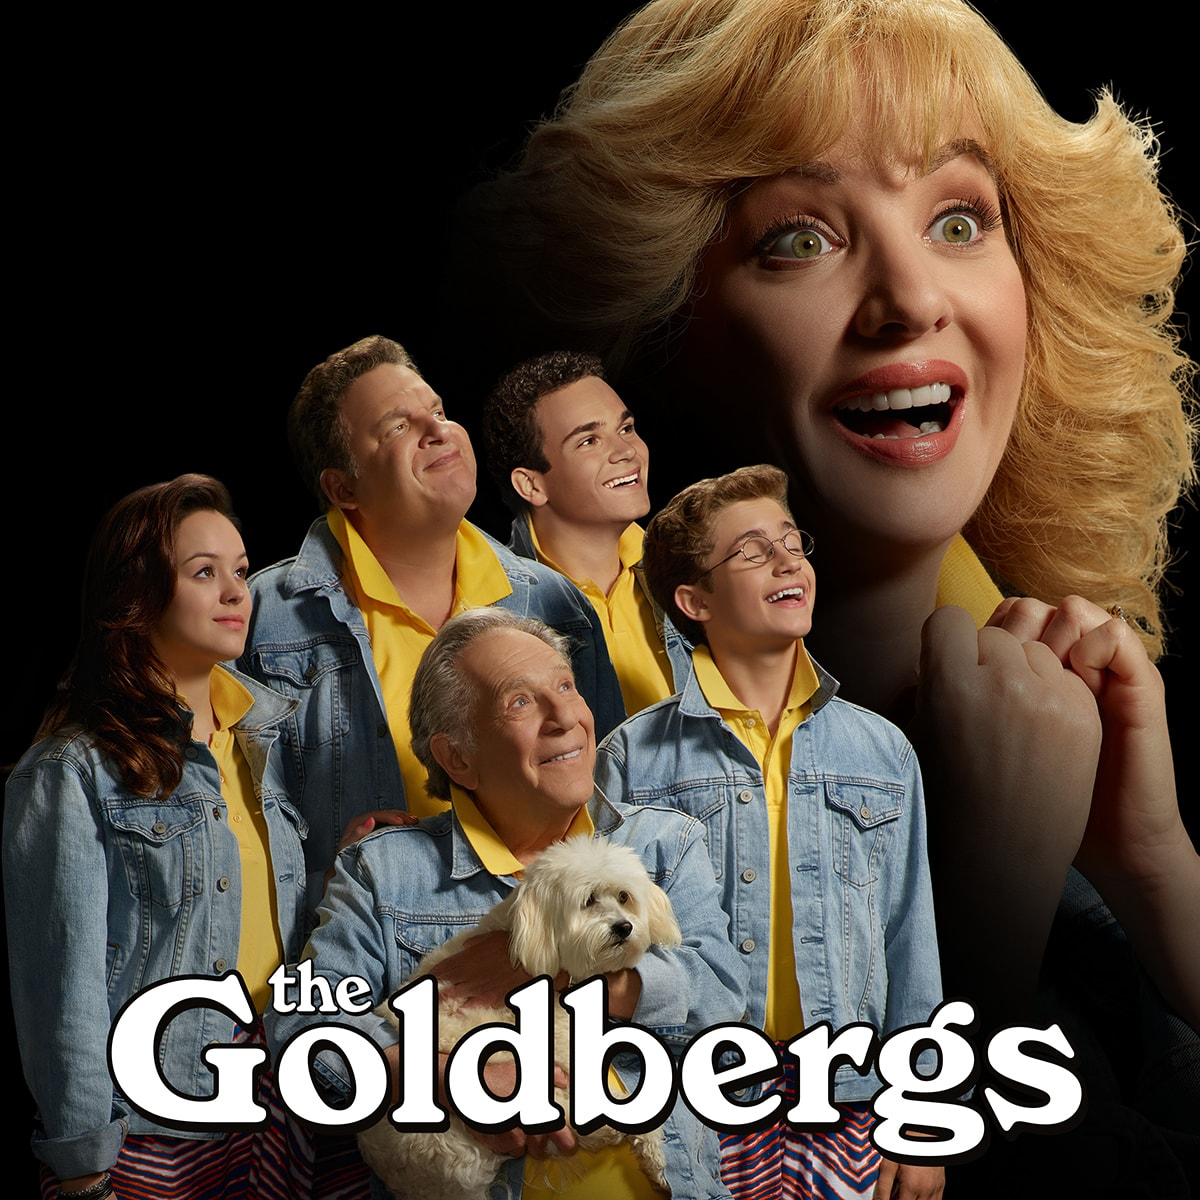 The Goldbergs ABC Promos - Television Promos